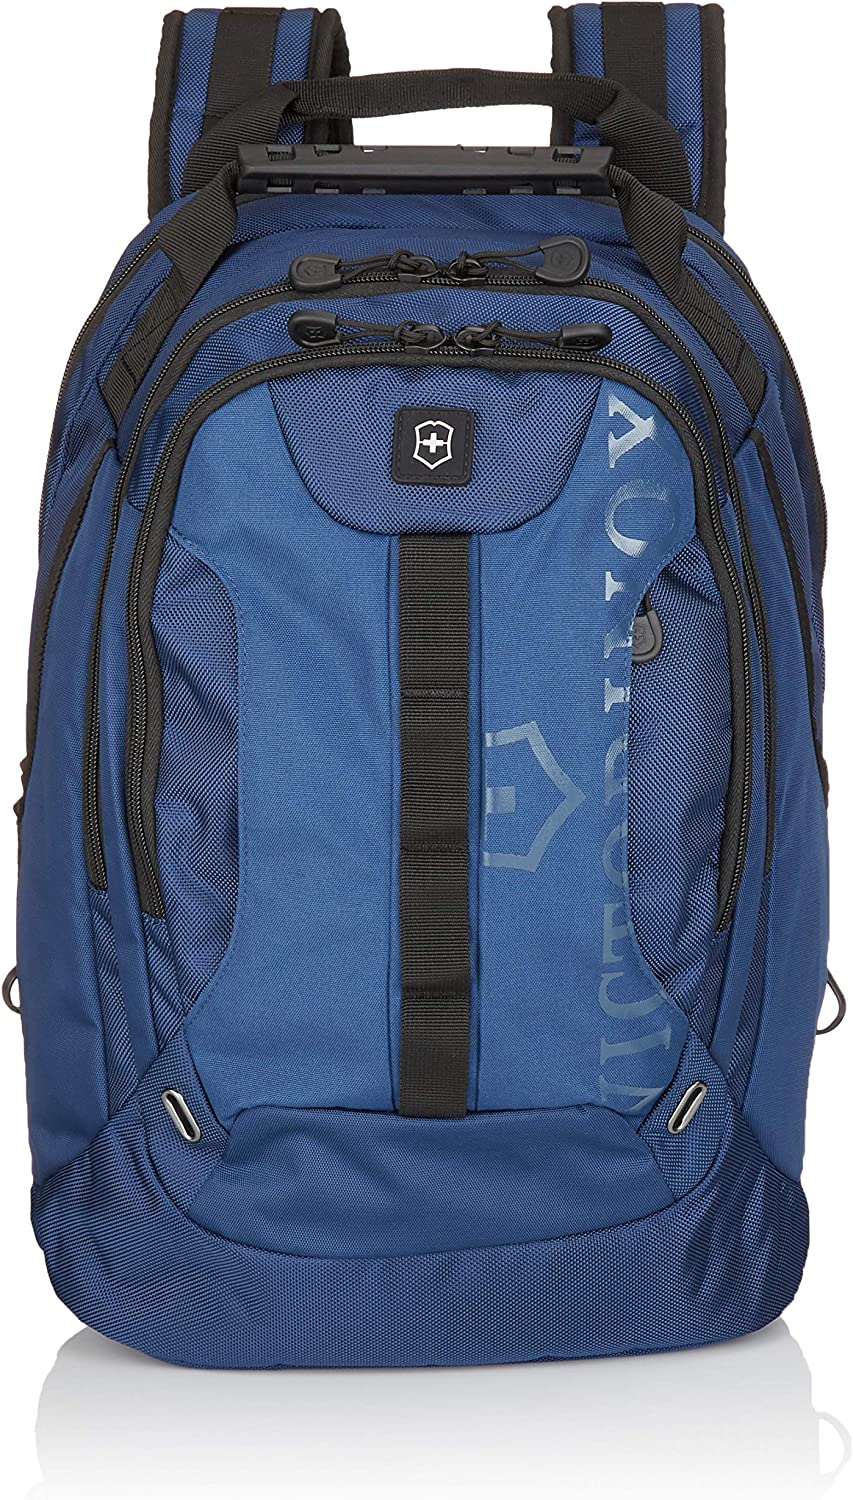 Victorinox VX Sport Trooper Laptop Backpack, Blue/Black, 19-inch